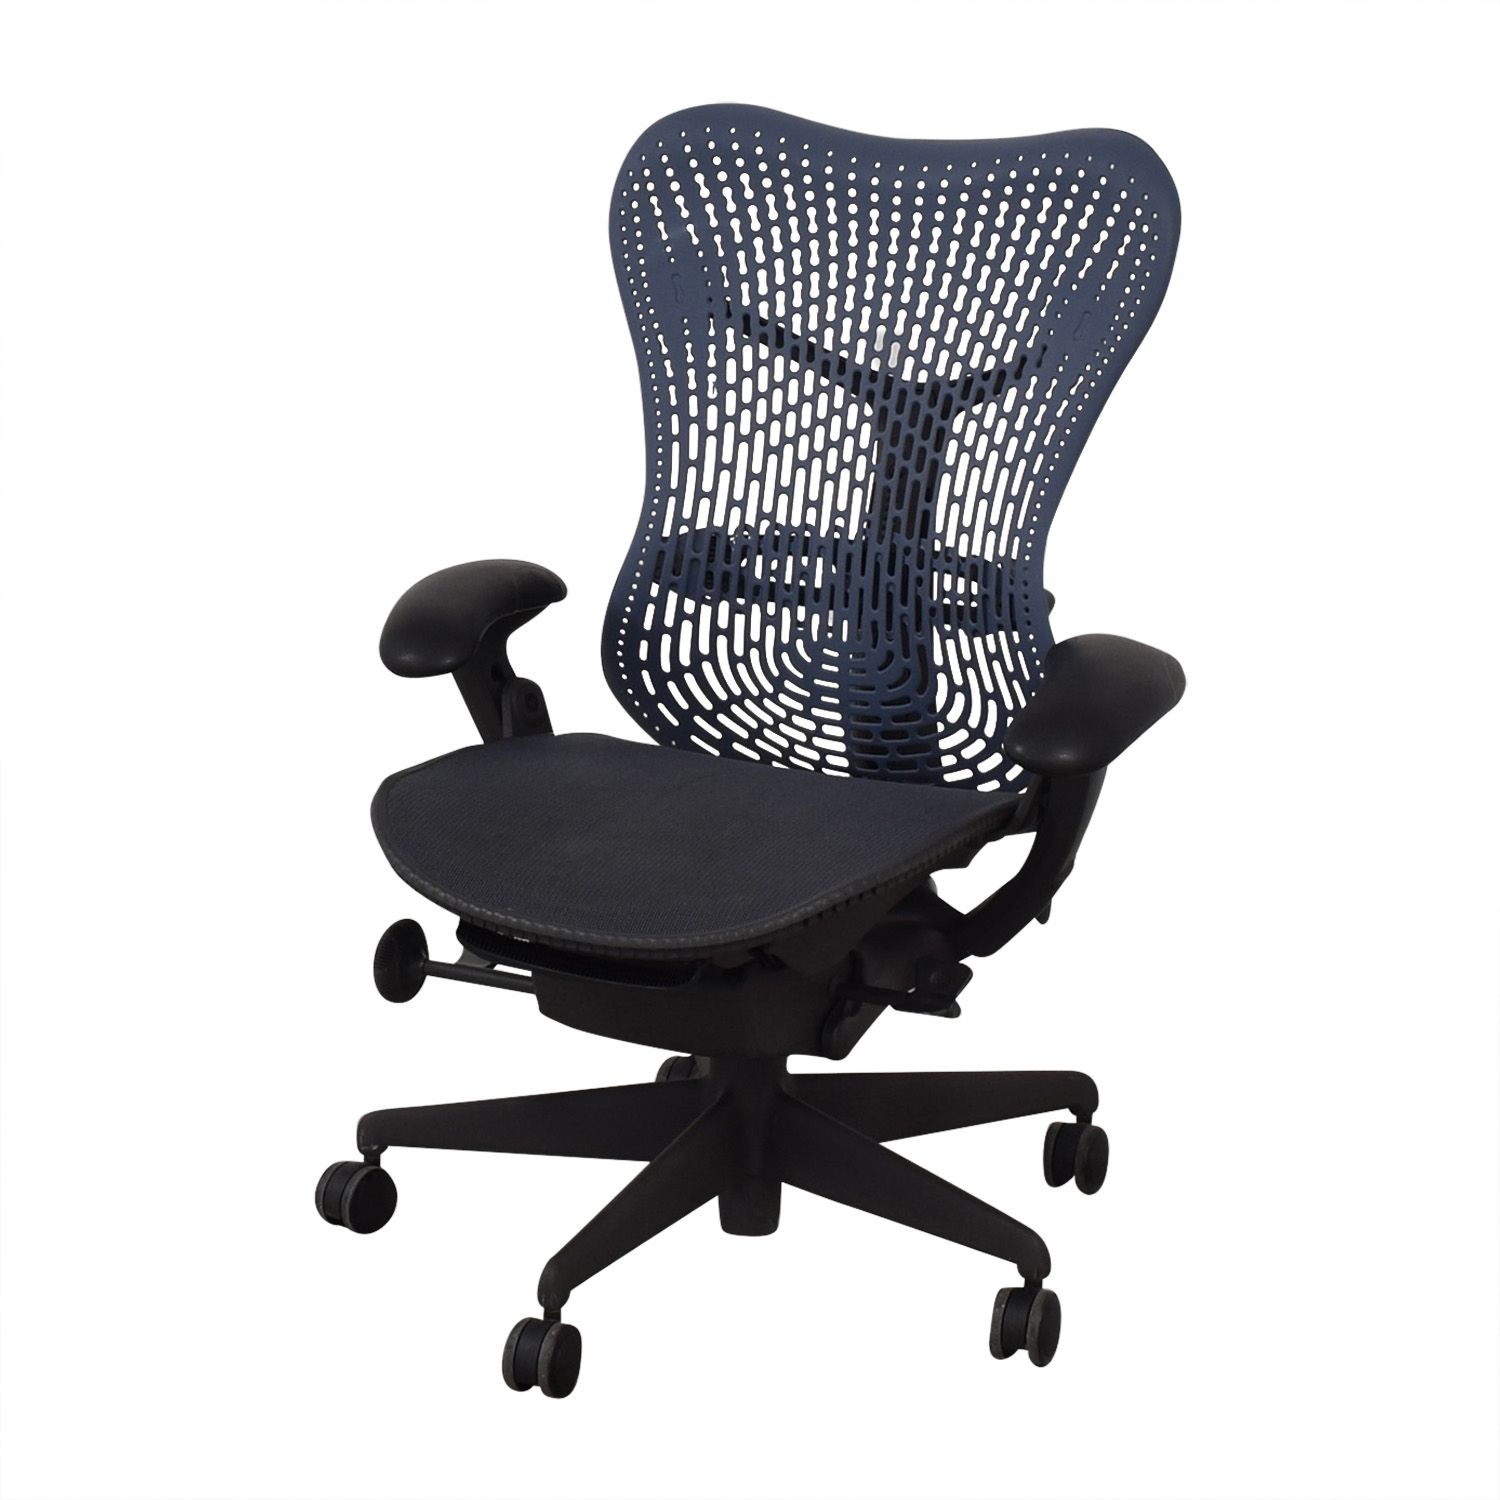 Herman Miller Aeron Office Chair / Home Office Chairs